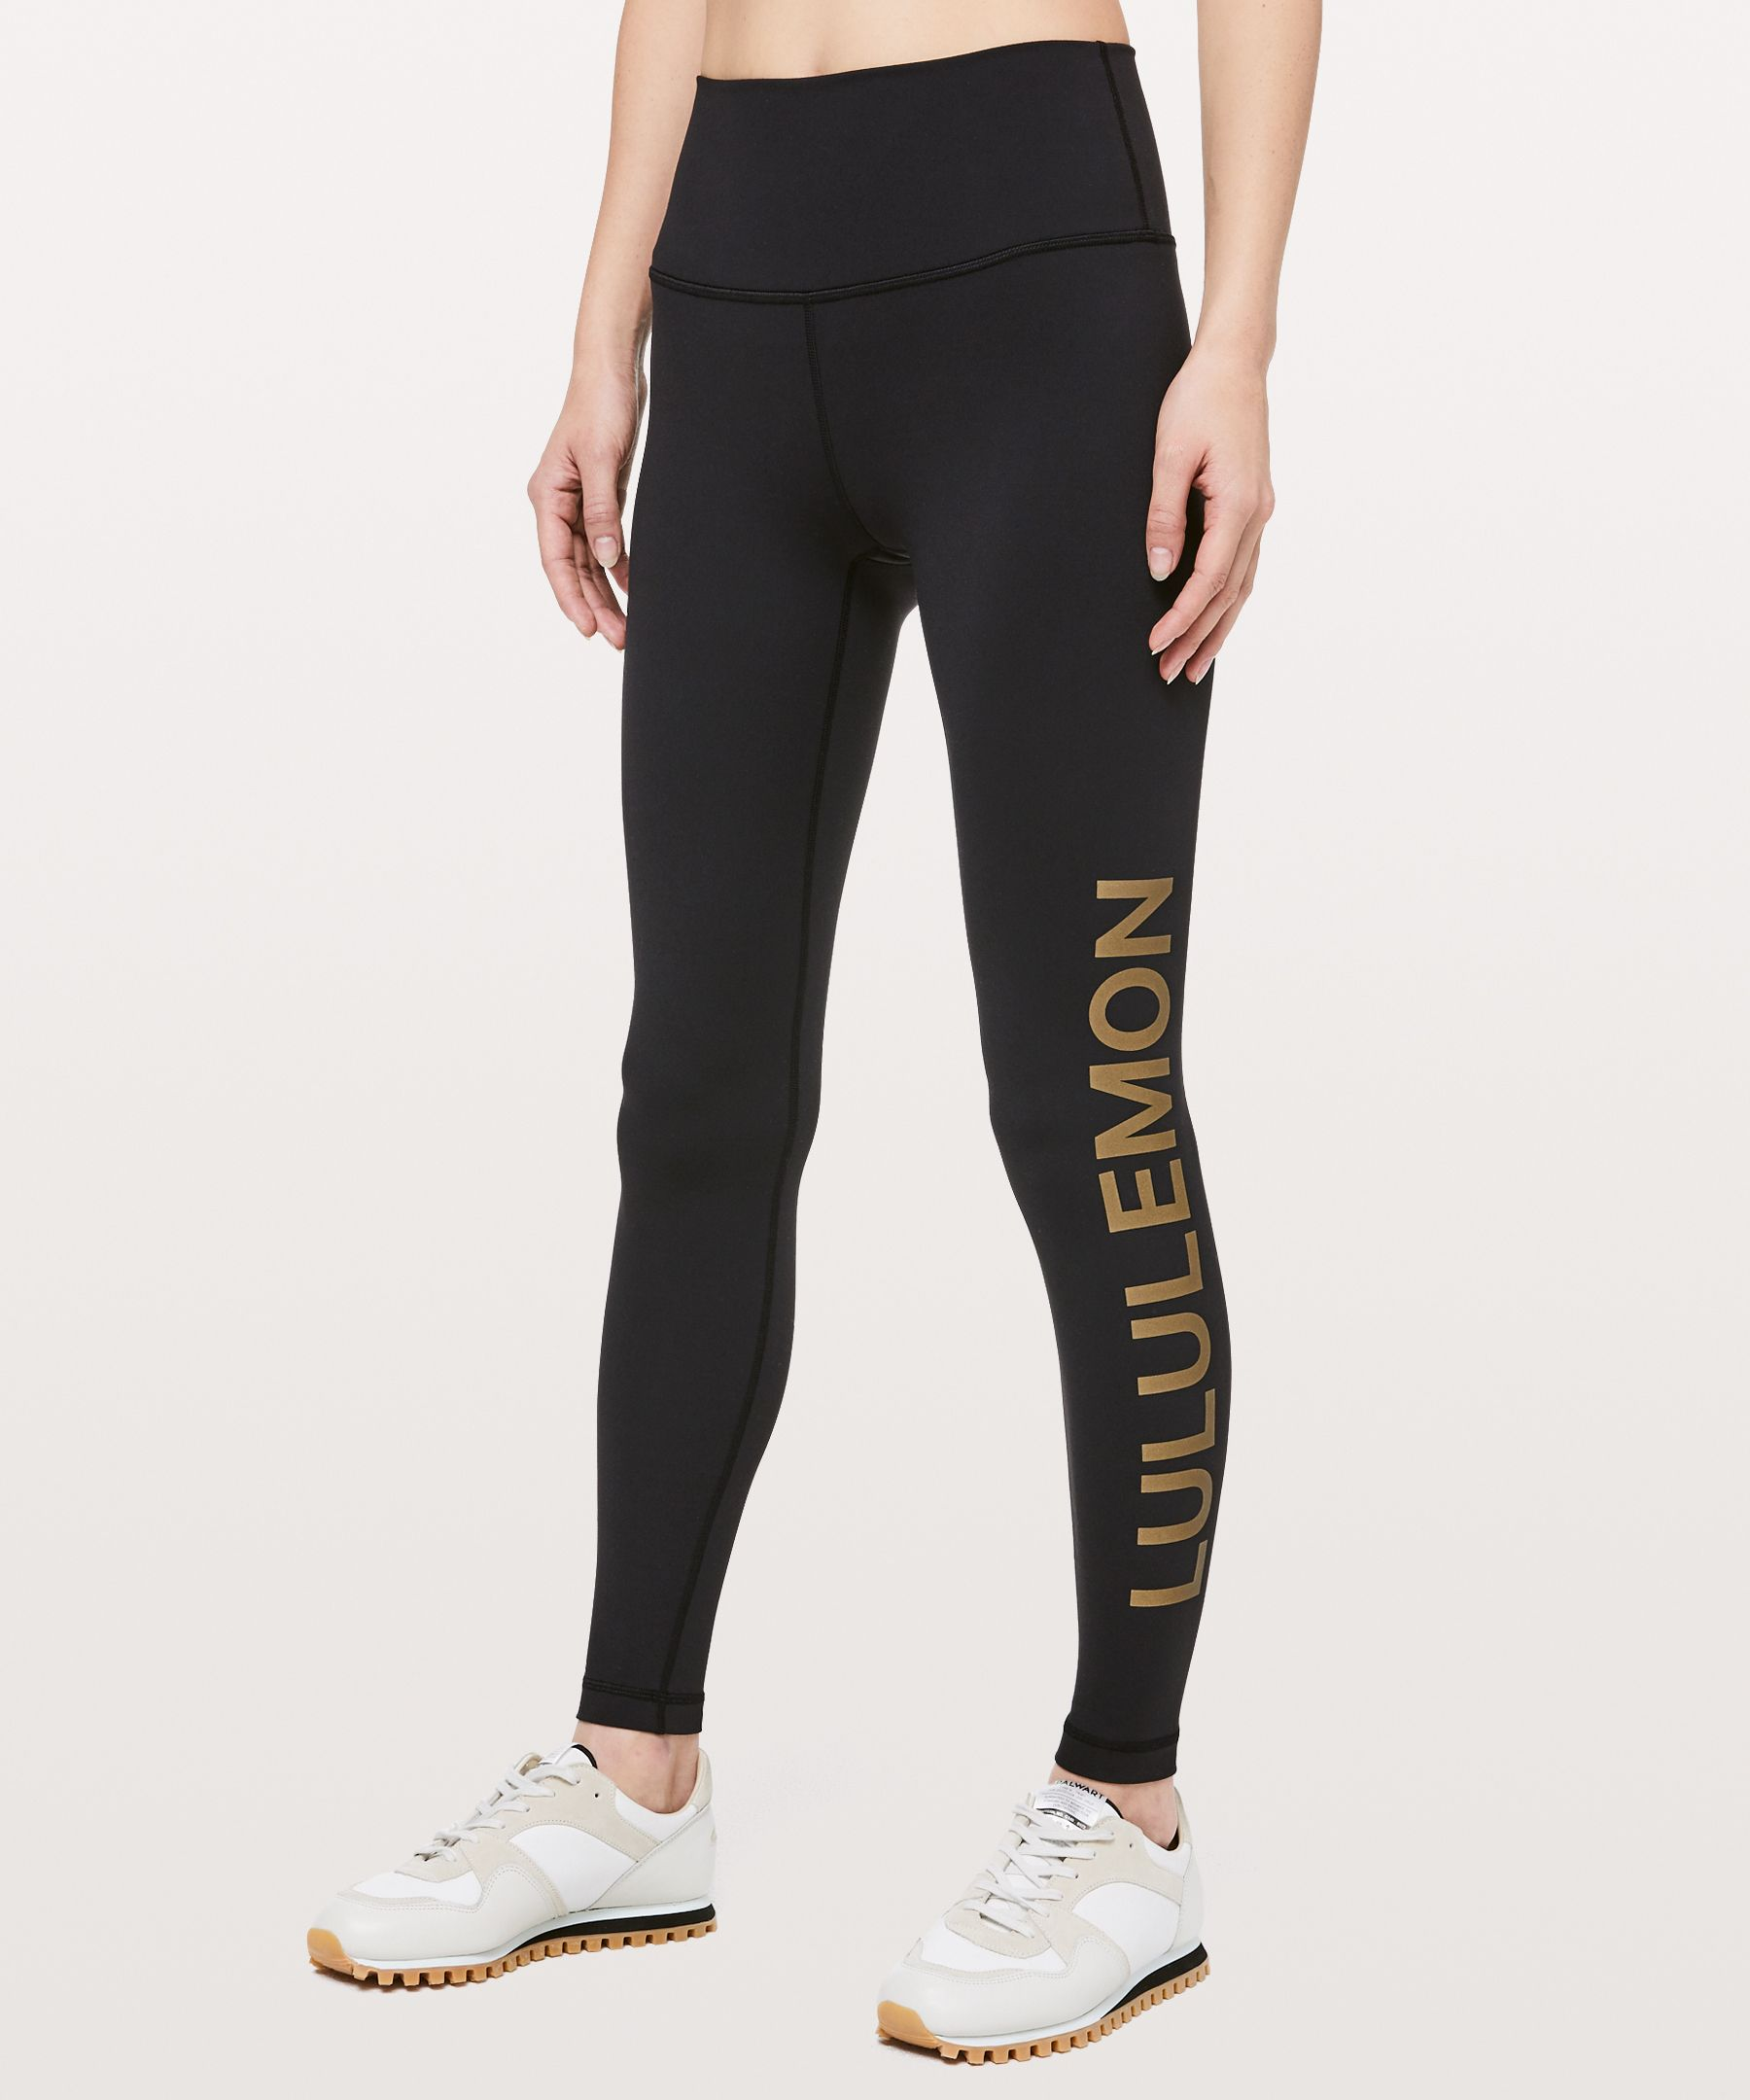 Wunder Under High Rise Tight Full On Luon Lunar New Year New by Lululemon